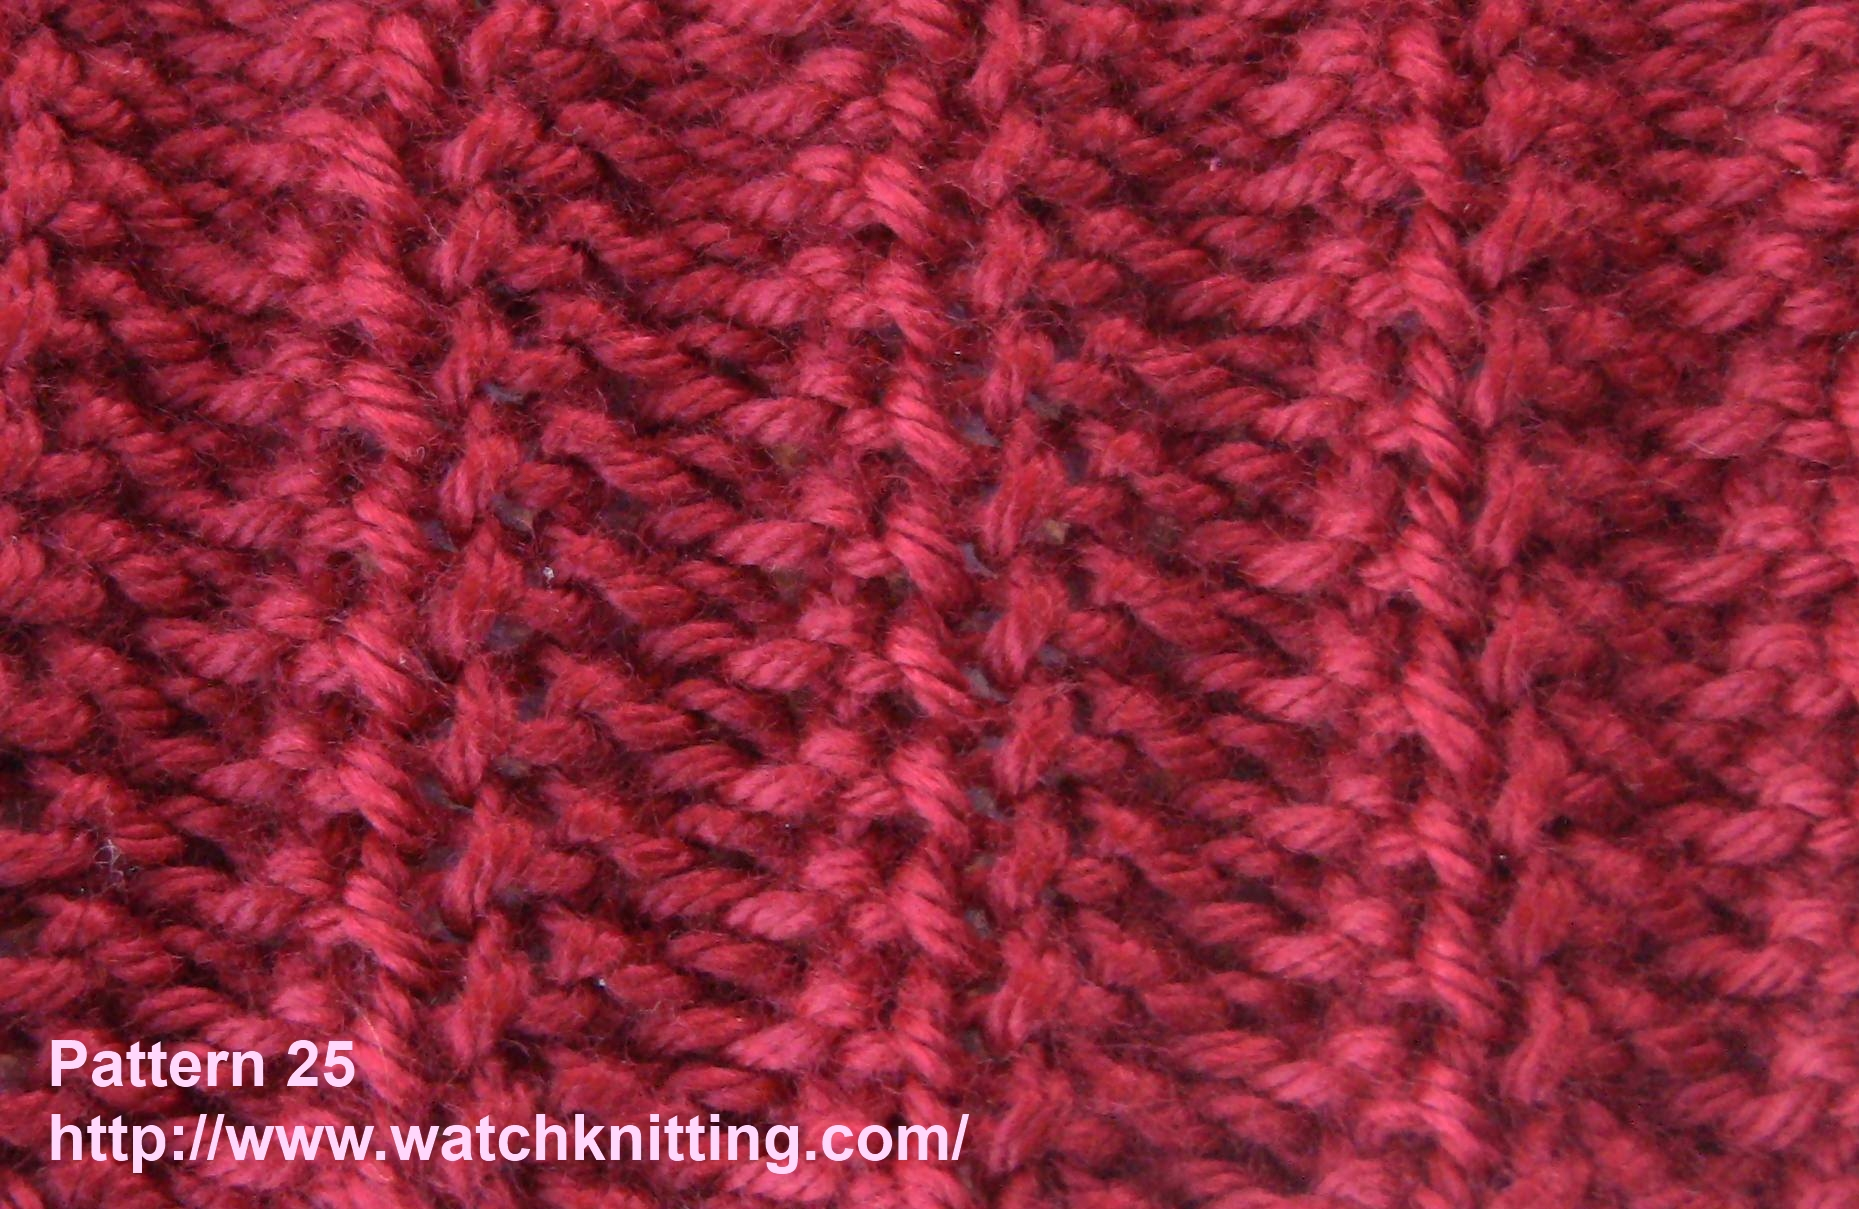 Easy Knitting Patterns : Knitting Basics For Beginners Watch knitting